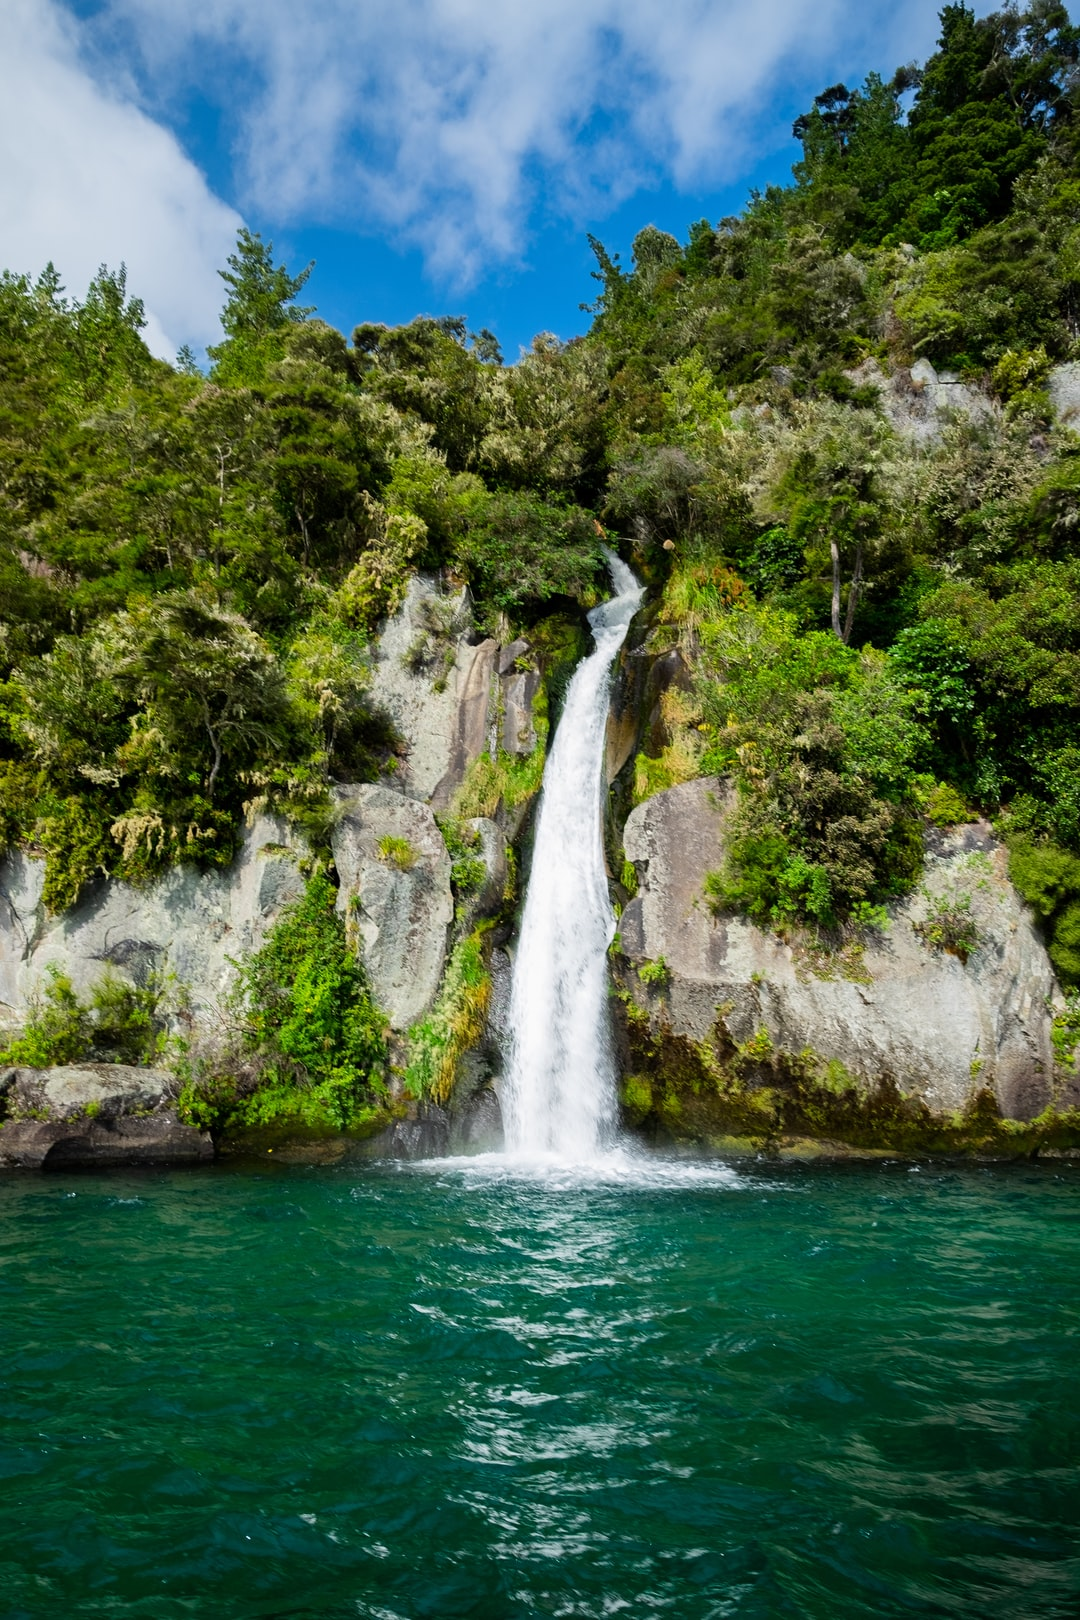 This hidden waterfall can be found in the remote Western Bays of Lake Taupo in NZ, accessible only by boat. The steep cliffs